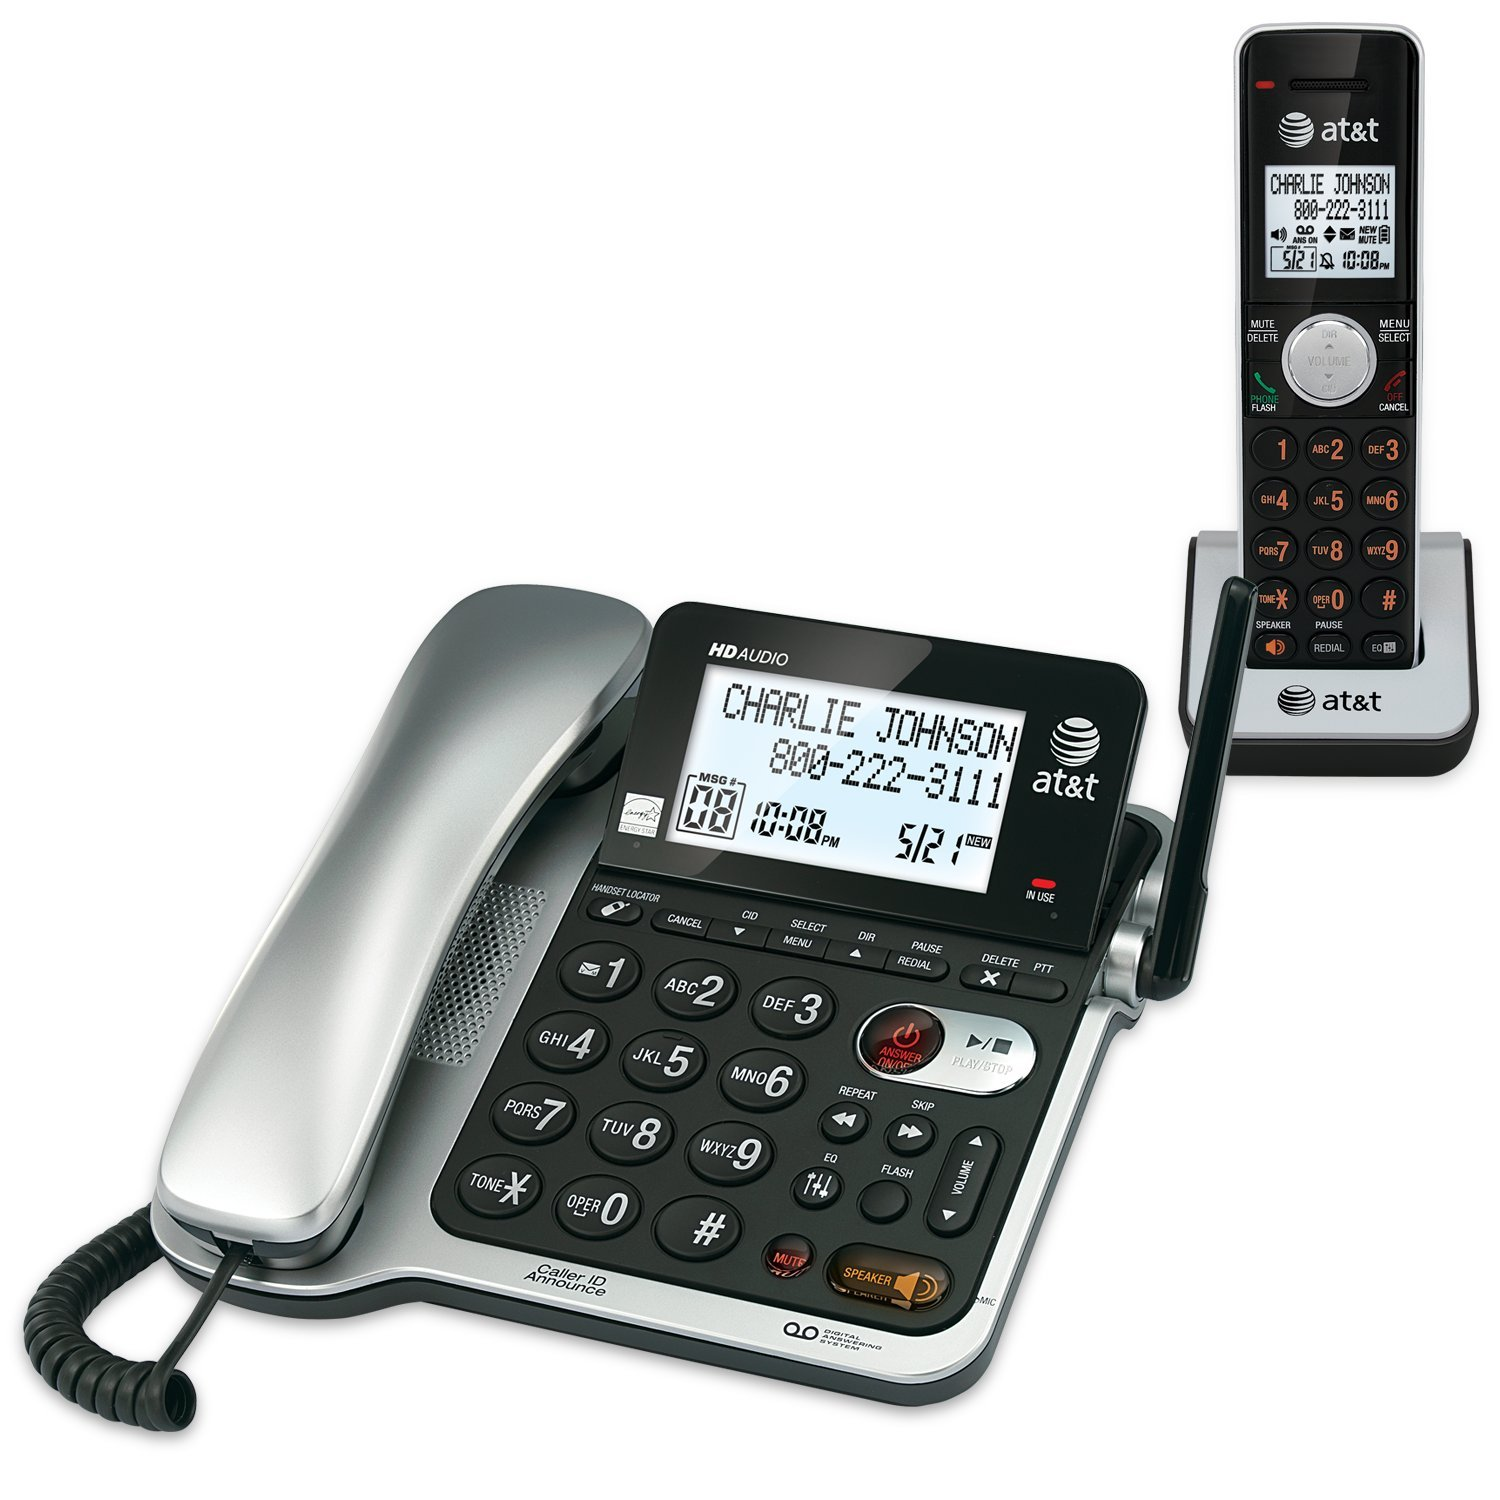 AT&T CL84102 DECT 6.0 Expandable Corded/Cordless Phone with Answering System and Caller ID/Call Waiting, Black, 1 Corded and 1 Cordless Handset